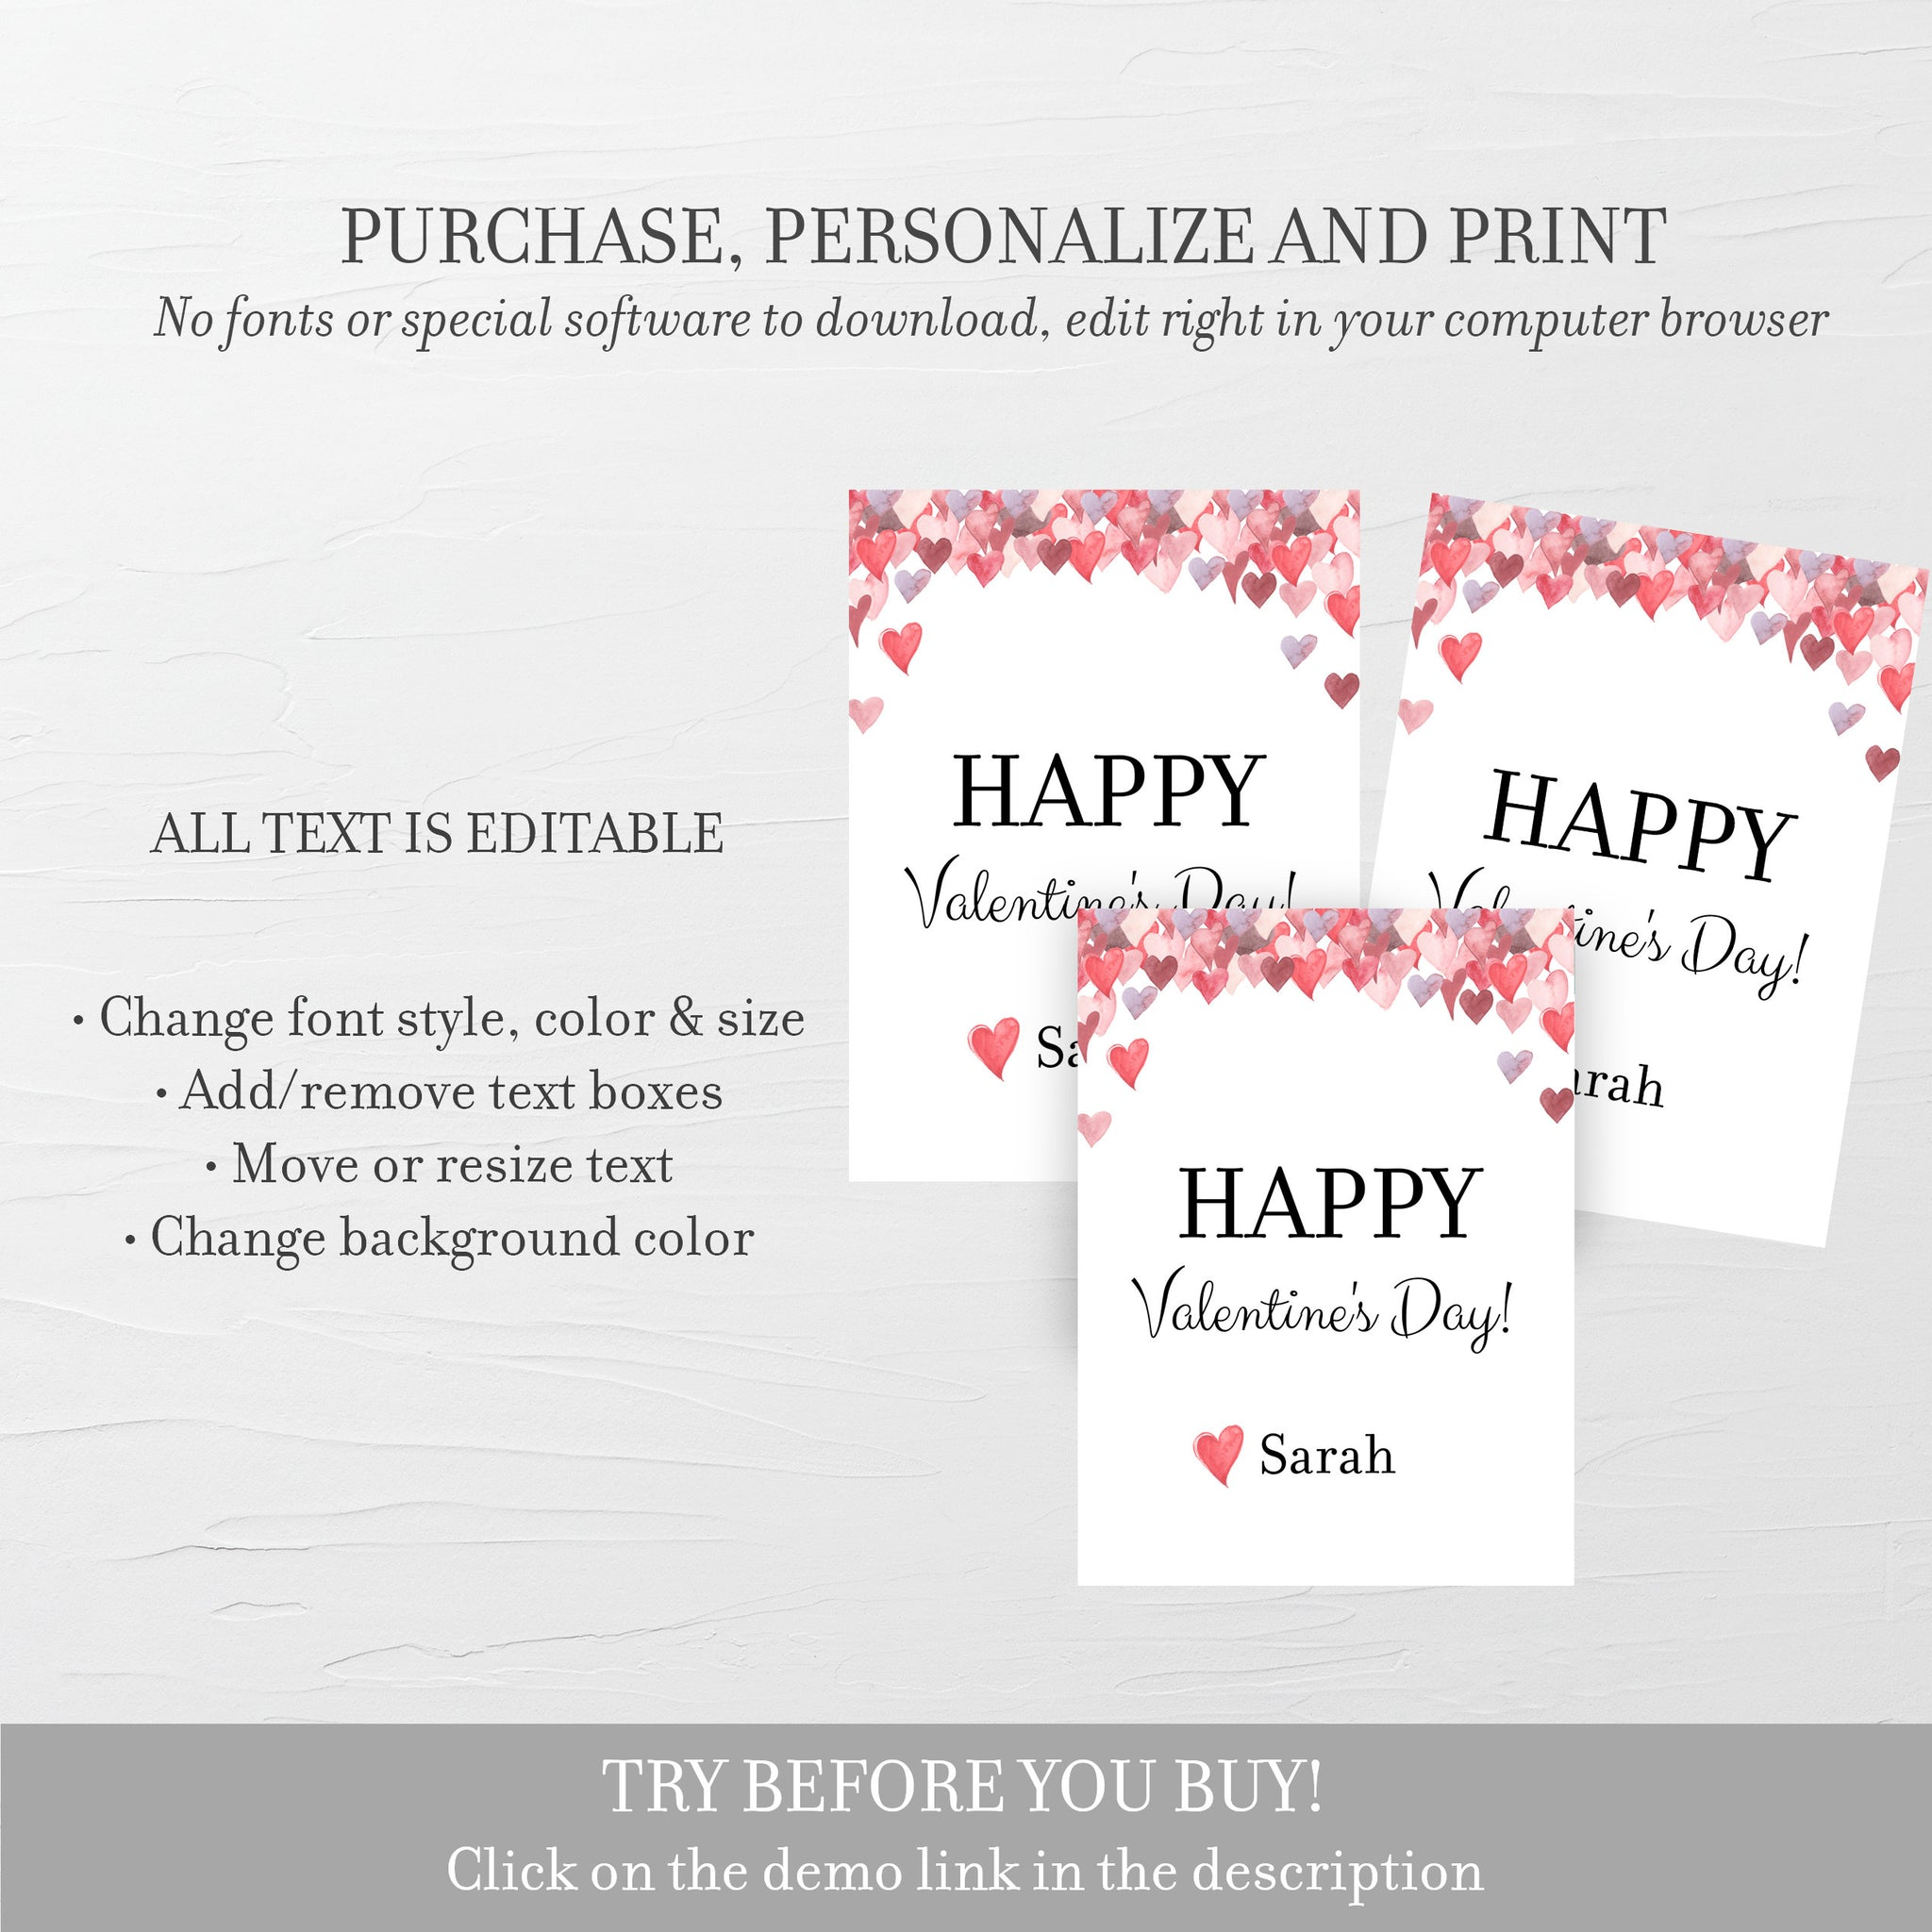 Printable Valentine Cards For Kids, Personalized Valentine Day Card Printable Template, DIY Valentines Day Card, DIGITAL DOWNLOAD V100